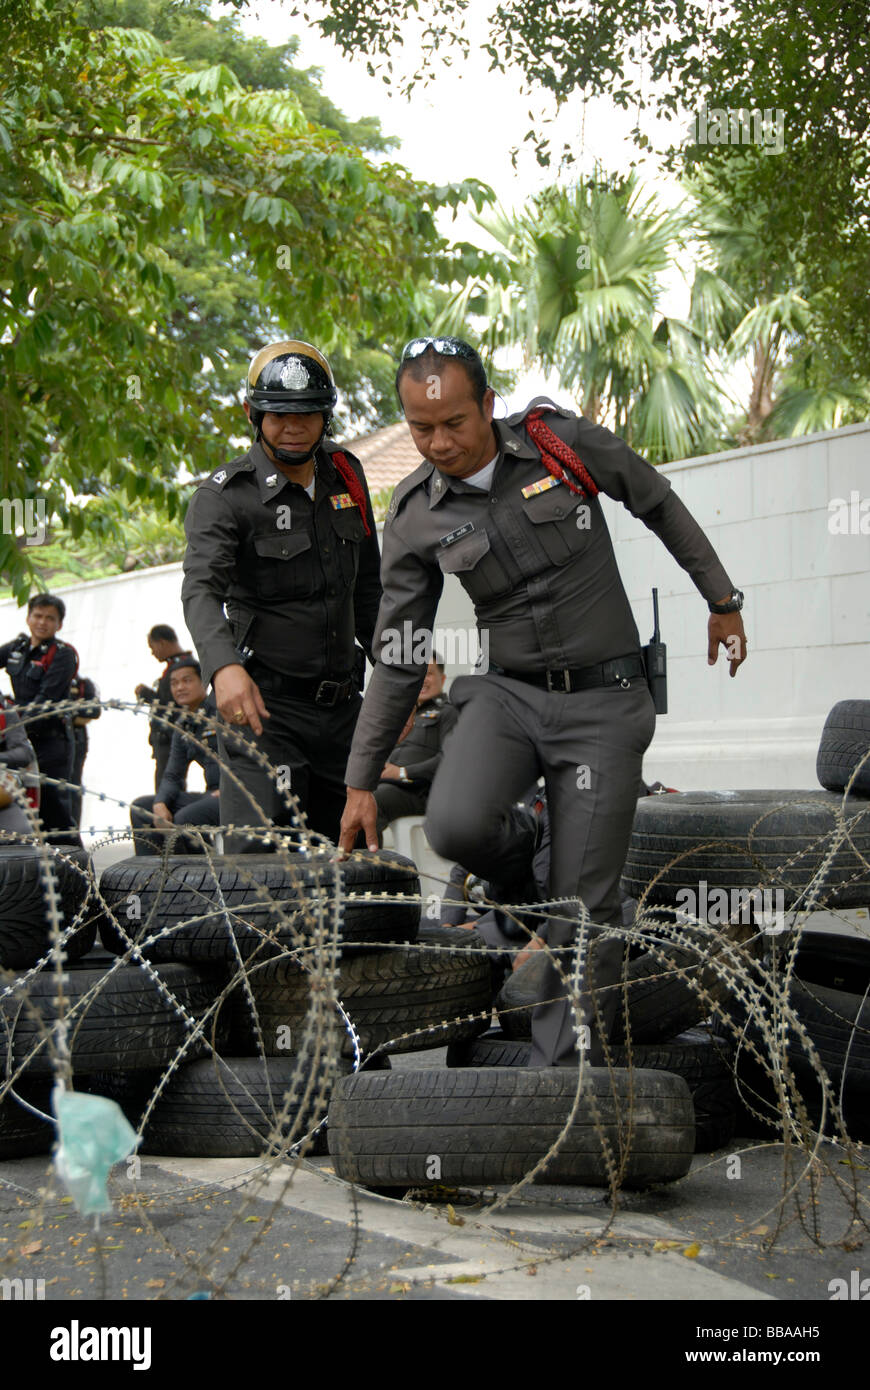 Demonstration, policemen climbing over roadblock of barbed wire and car tires, Bangkok, Thailand, Southeast Asia - Stock Image